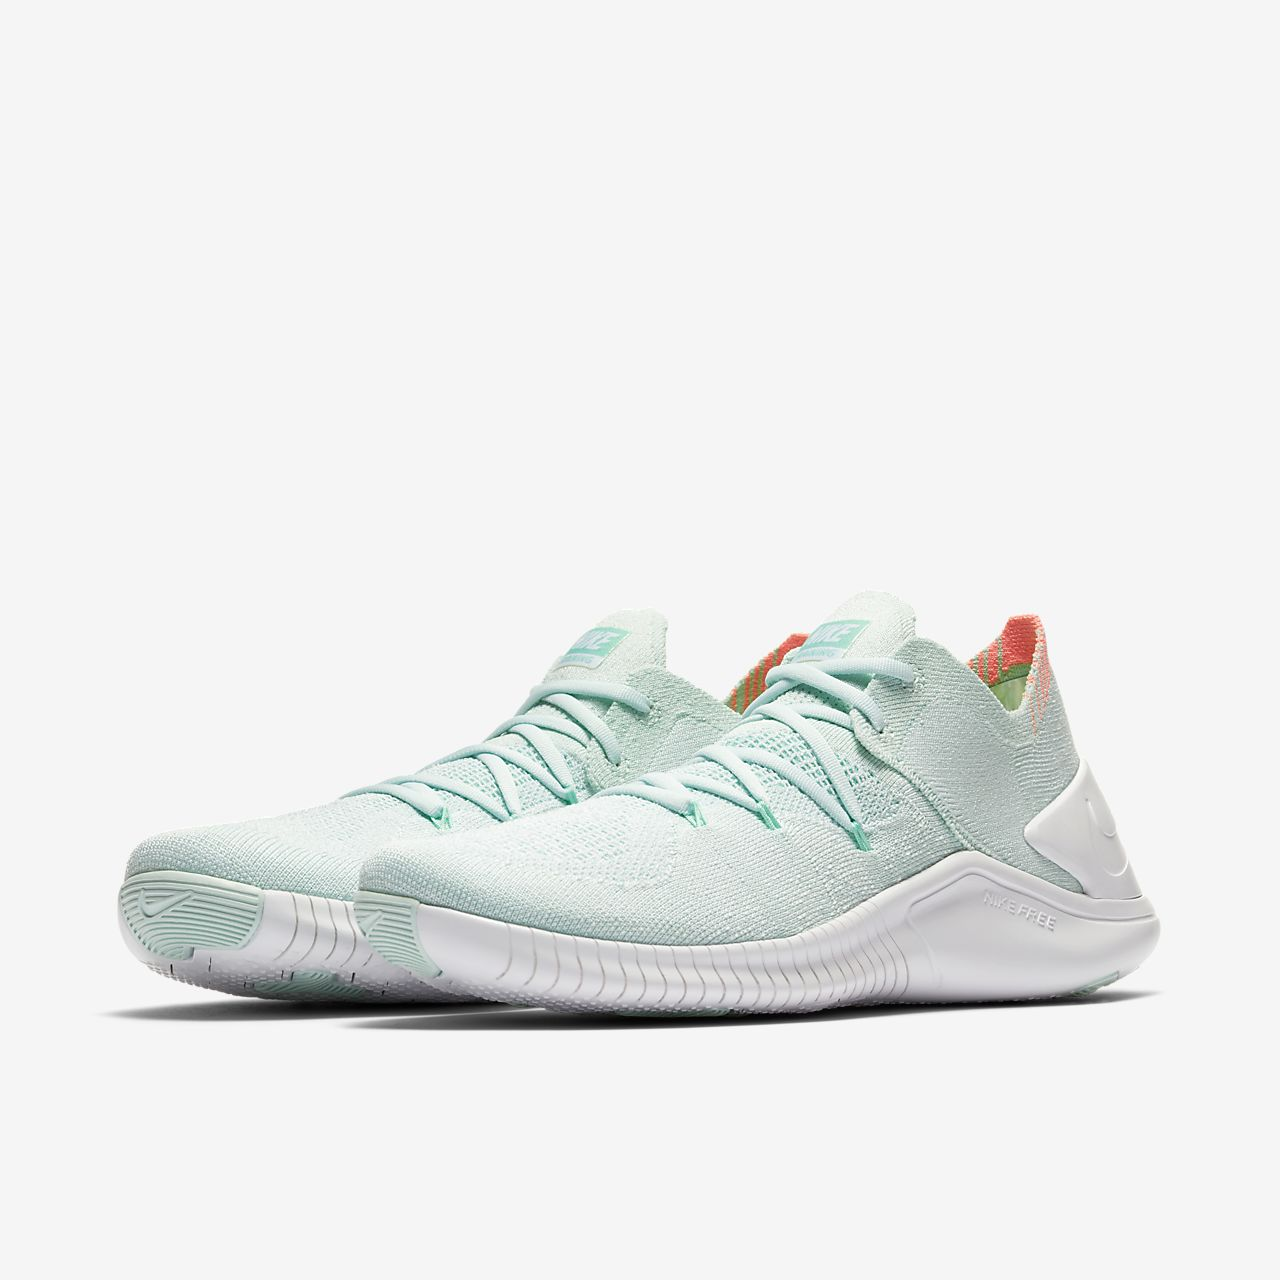 03164dc4d220 ... white black 39f1f 75bcc promo code for nike free tr flyknit 3 womens  gym hiit cross training shoe 4c1d1 7184f ...